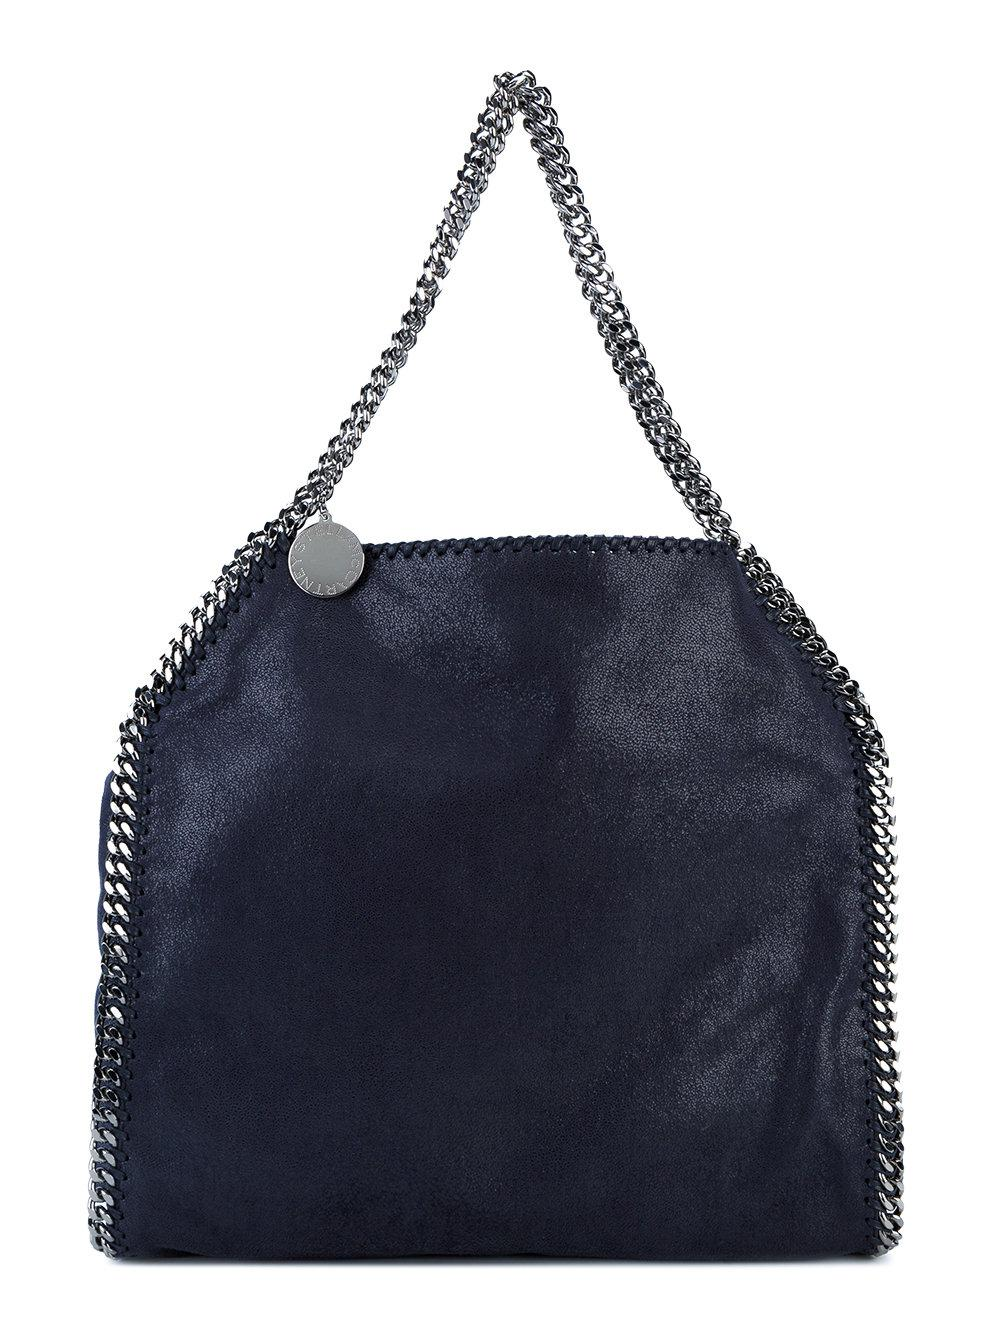 ced0d3a68672 Lyst - Stella McCartney Falabella Small Tote Bag in Blue